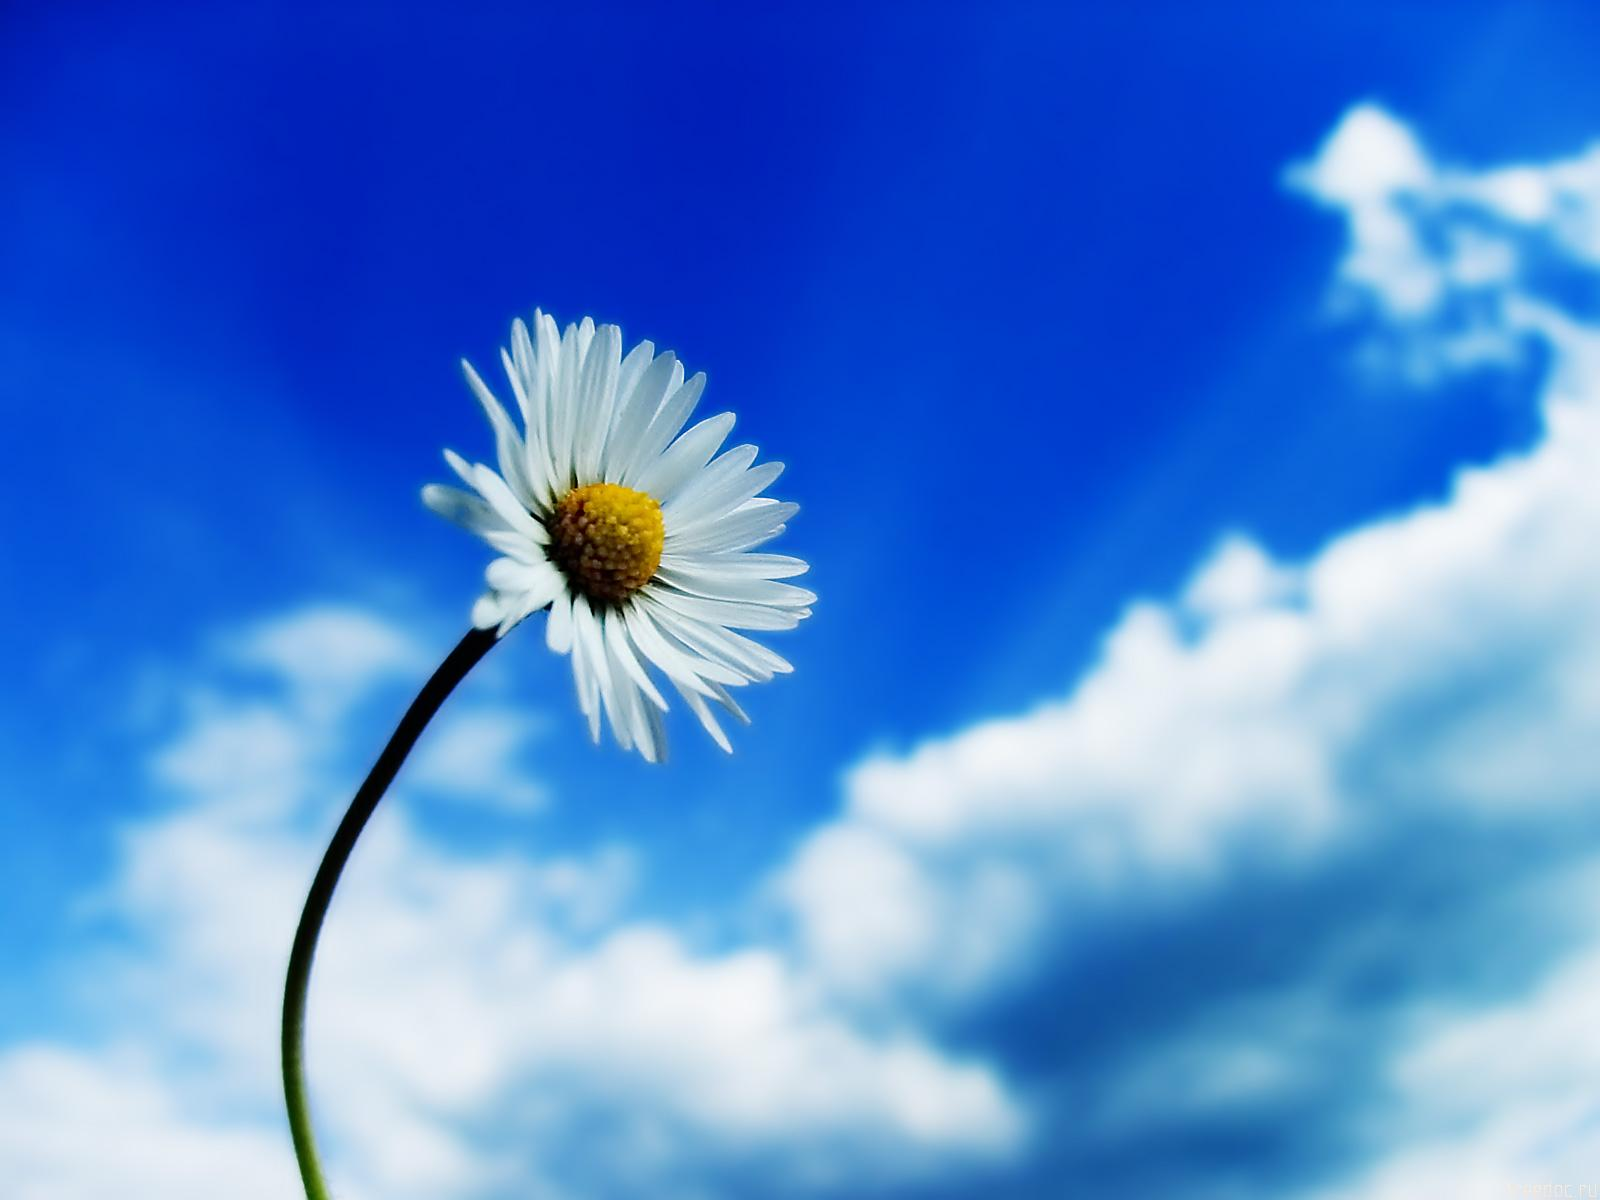 Beautiful Sky White Flower Wallpapers HD Wallpapers 1600x1200